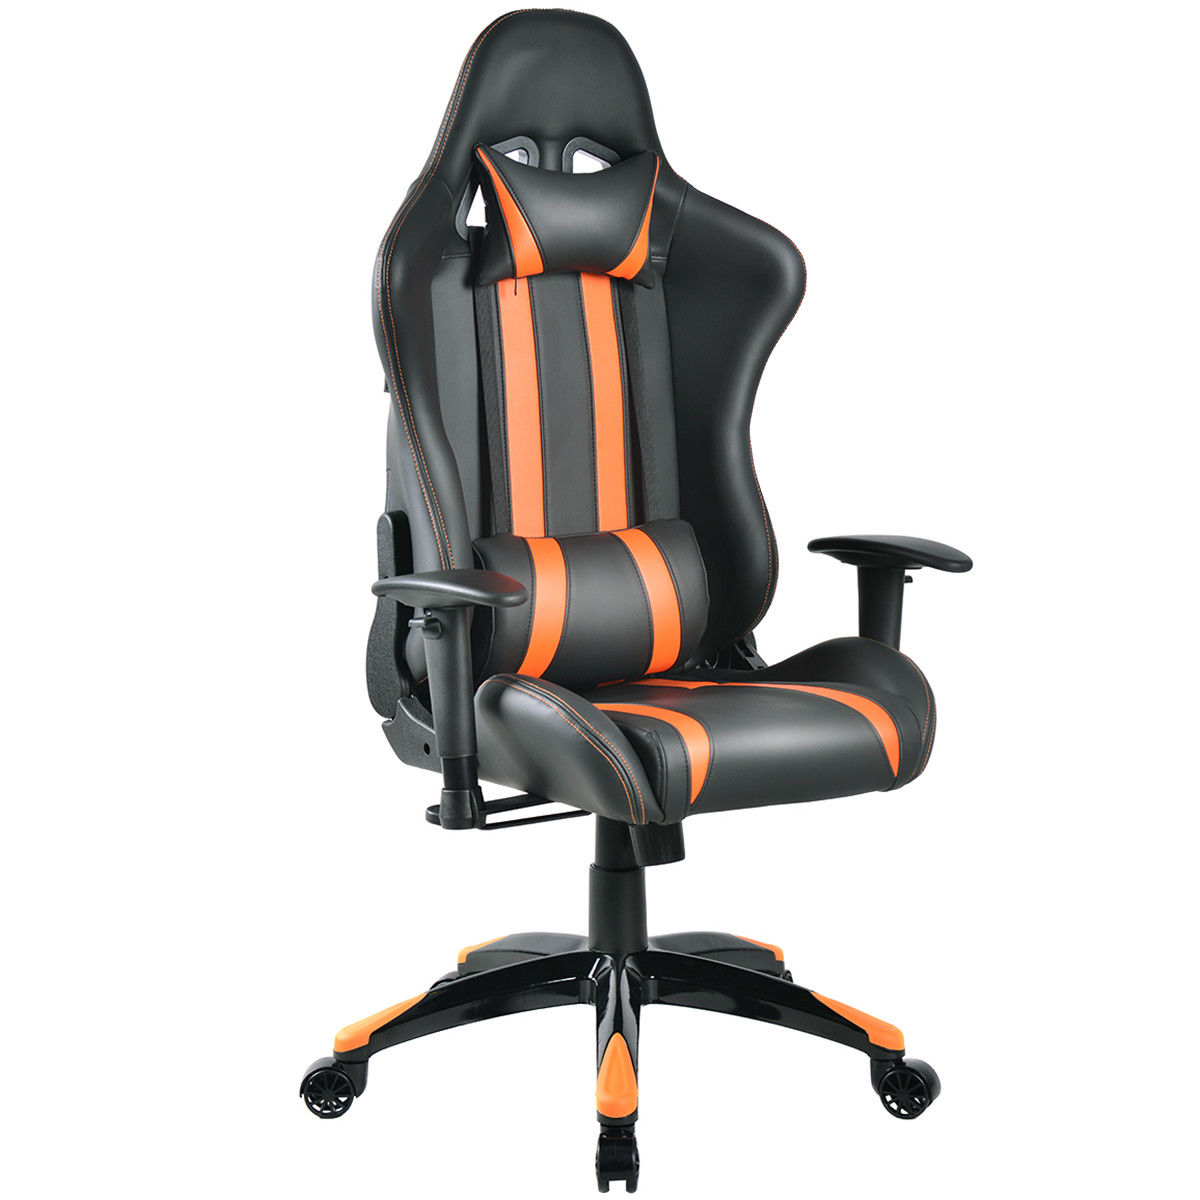 Giantex Racing High Back Reclining Gaming Chair Ergonomic Computer Desk Home Office Chair Modern Gaming Chairs HW53993OR 240340 high quality back pillow office chair 3d handrail function computer household ergonomic chair 360 degree rotating seat